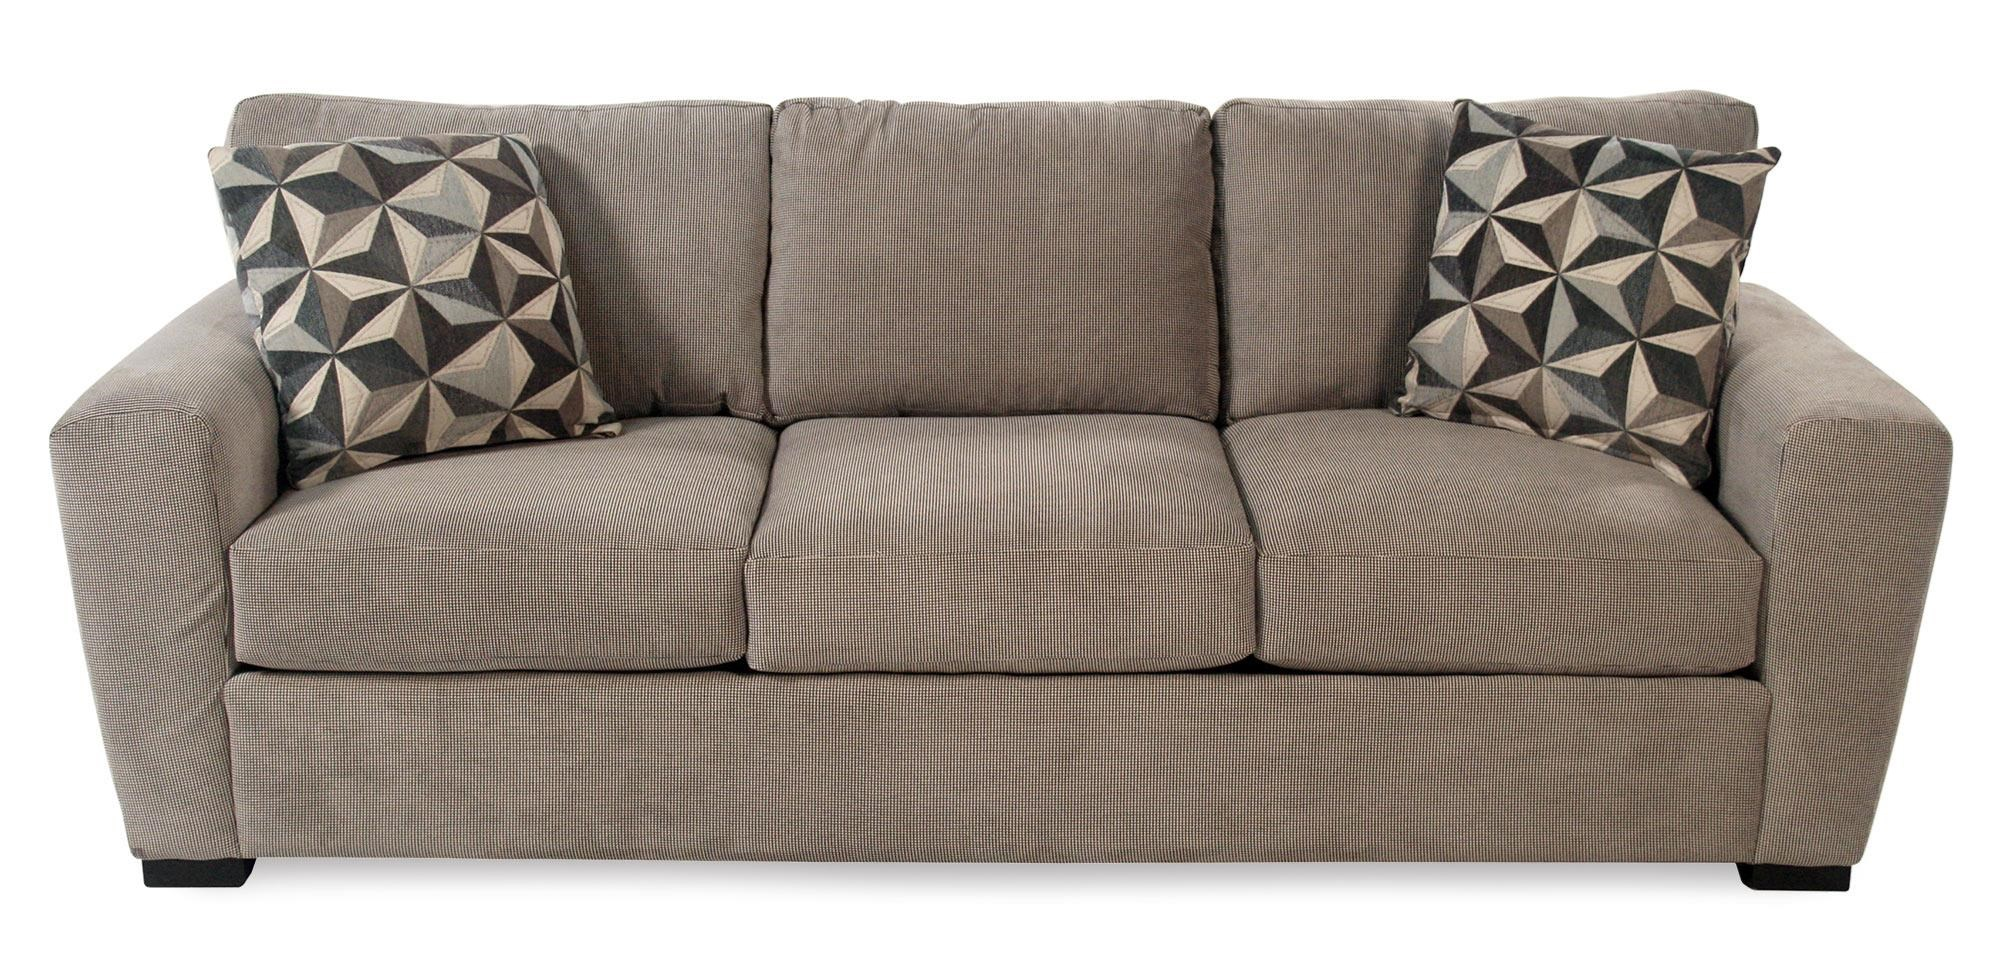 Echo Casual Sofa with Track Arms and Block Feet Rotmans Sofas